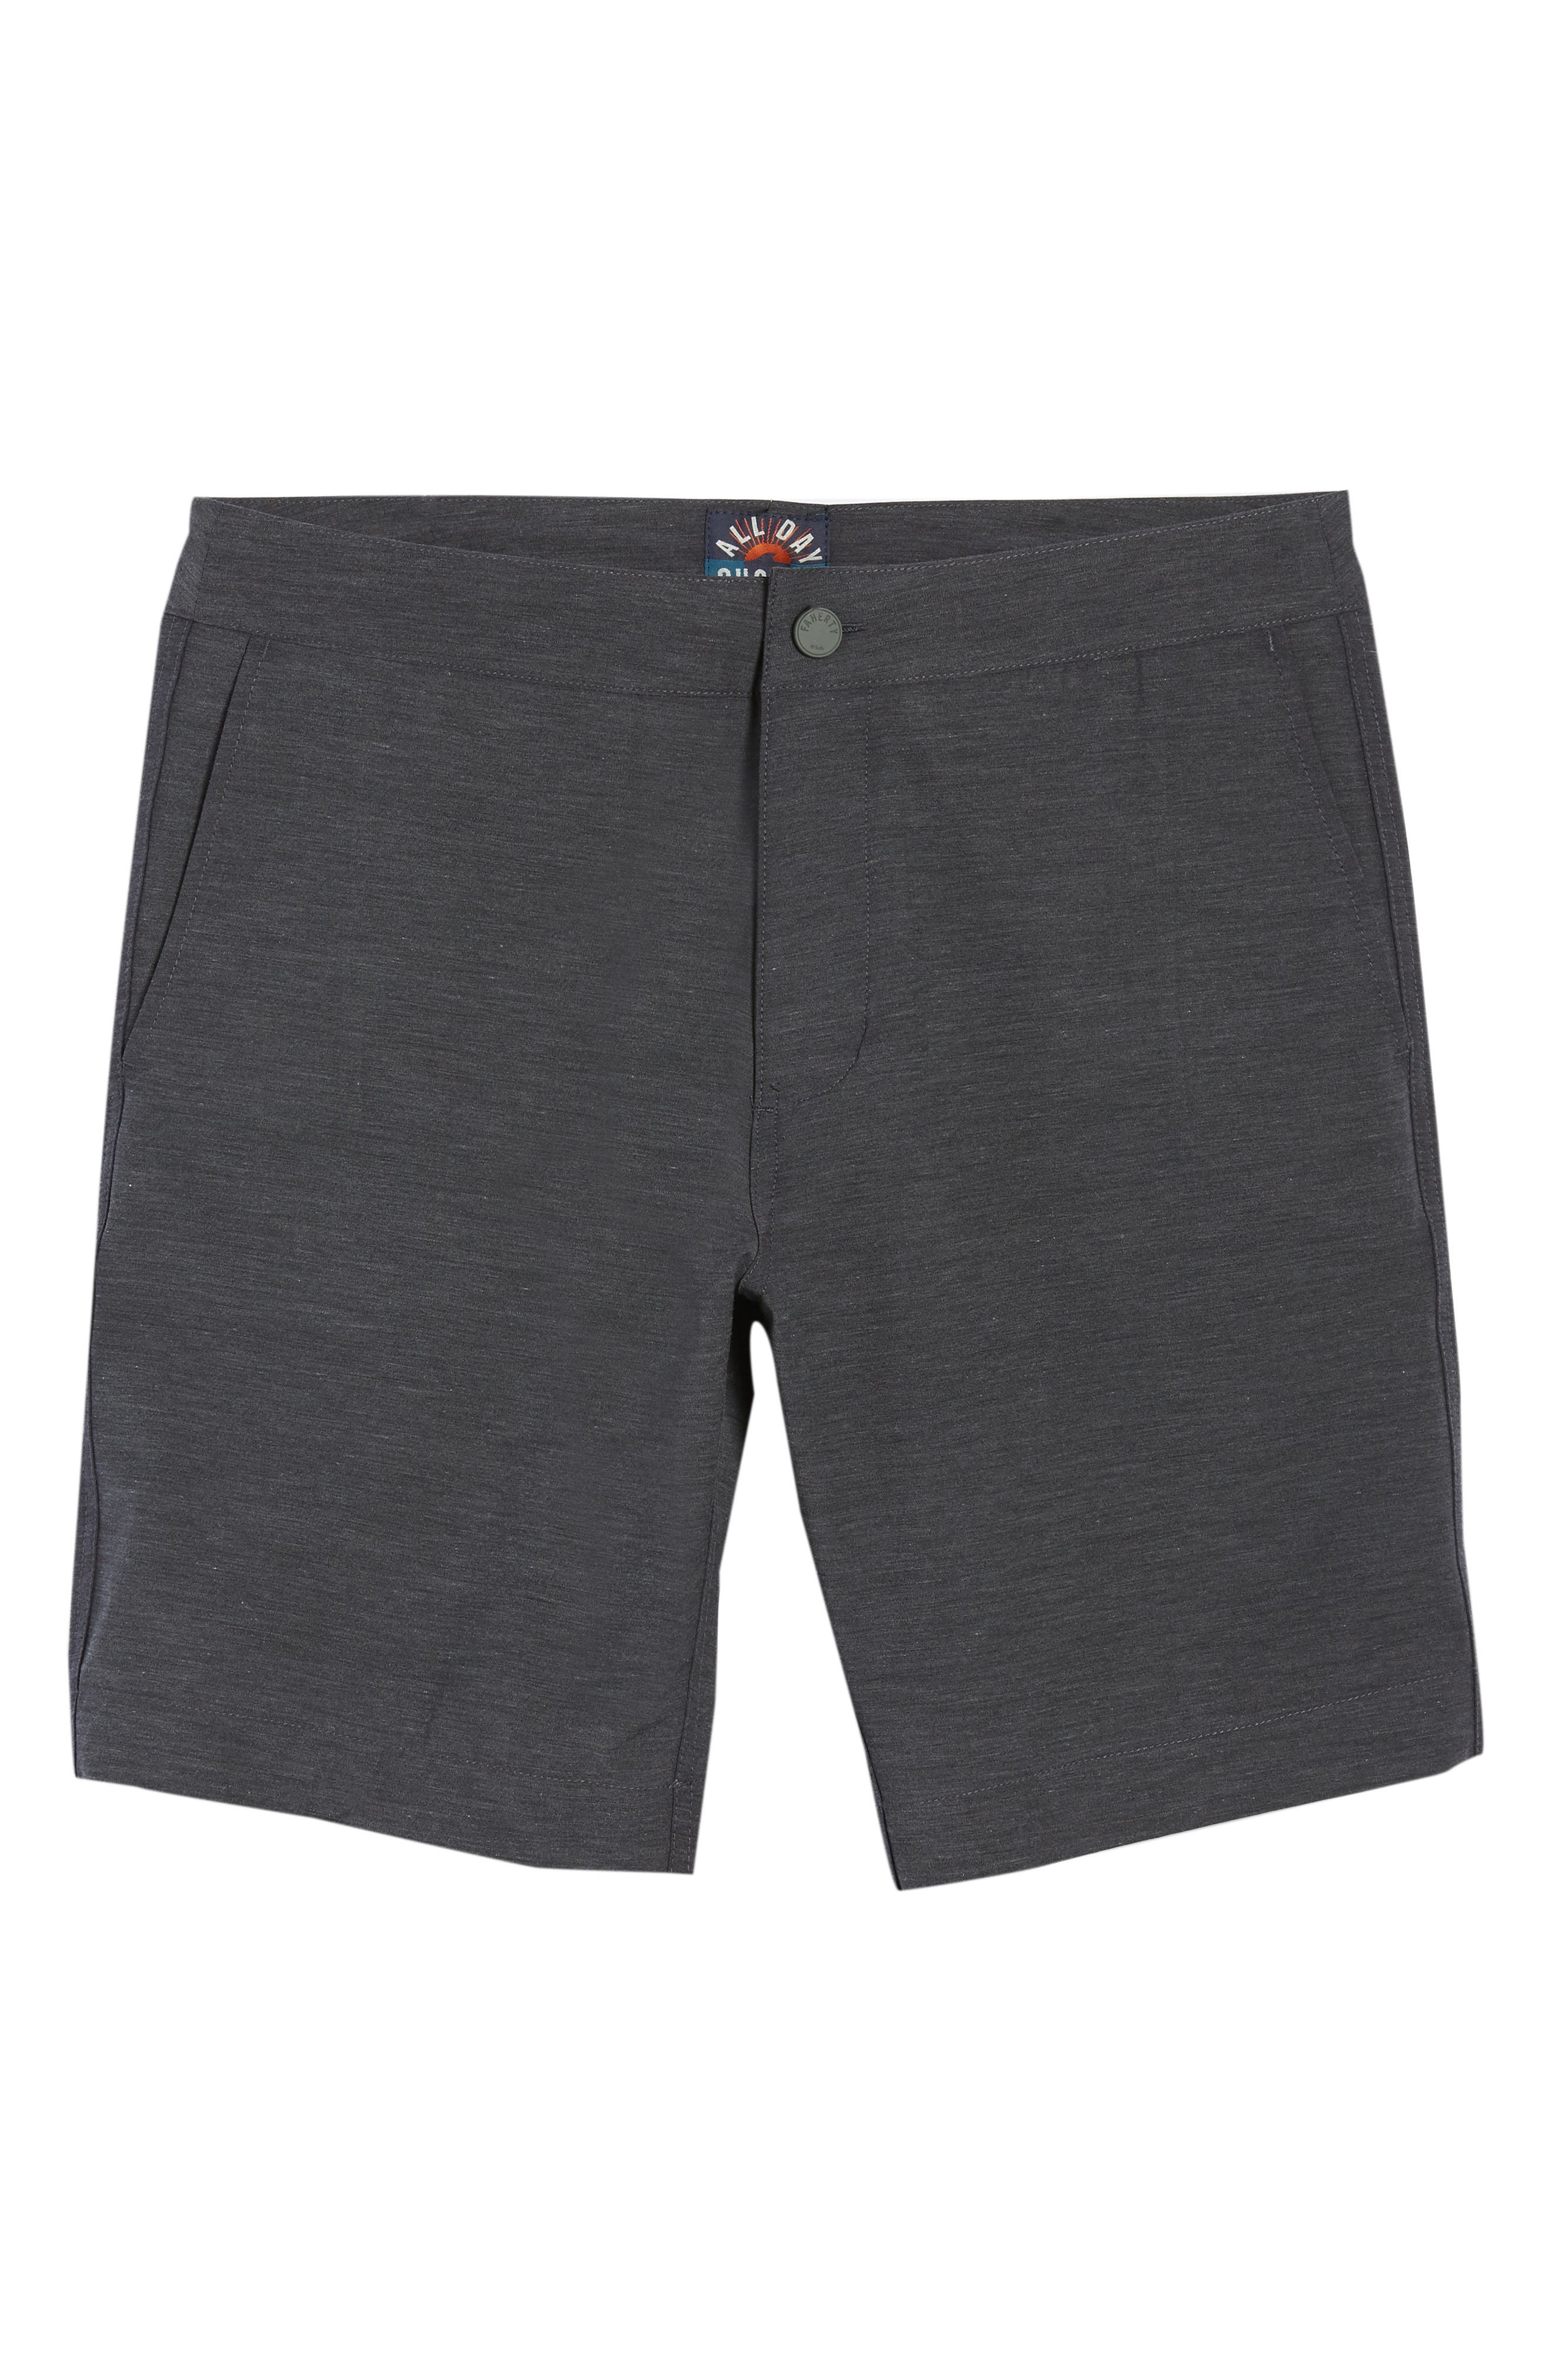 FAHERTY, All Day Flat Front Shorts, Alternate thumbnail 6, color, CHARCOAL